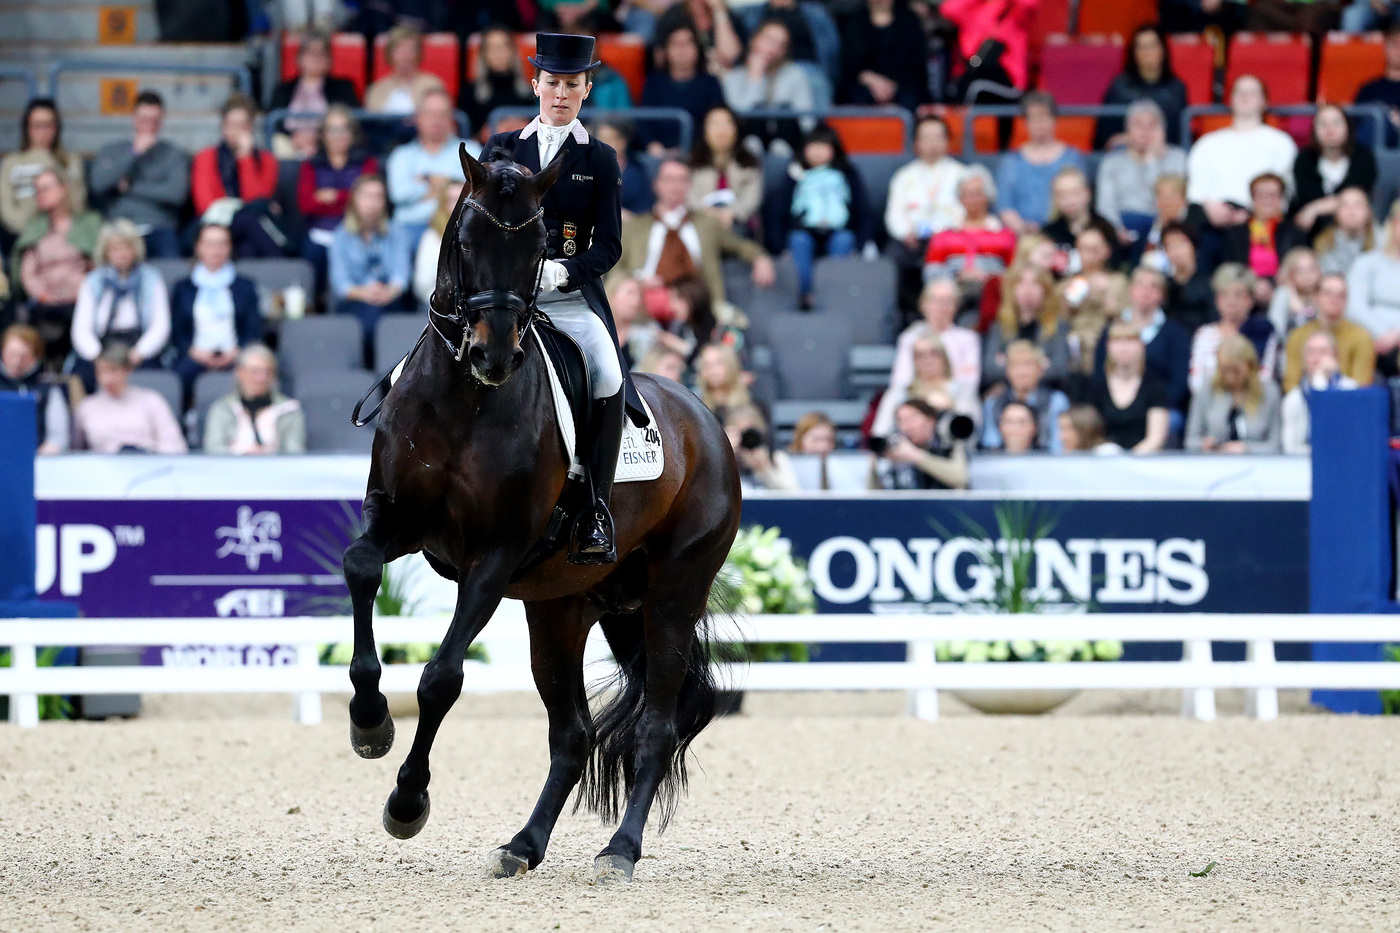 Longines Show Jumping Event: Steve Guerdat and Alamo took brilliant victory at the 2019 Longines FEI Jumping World CupTM Final 3